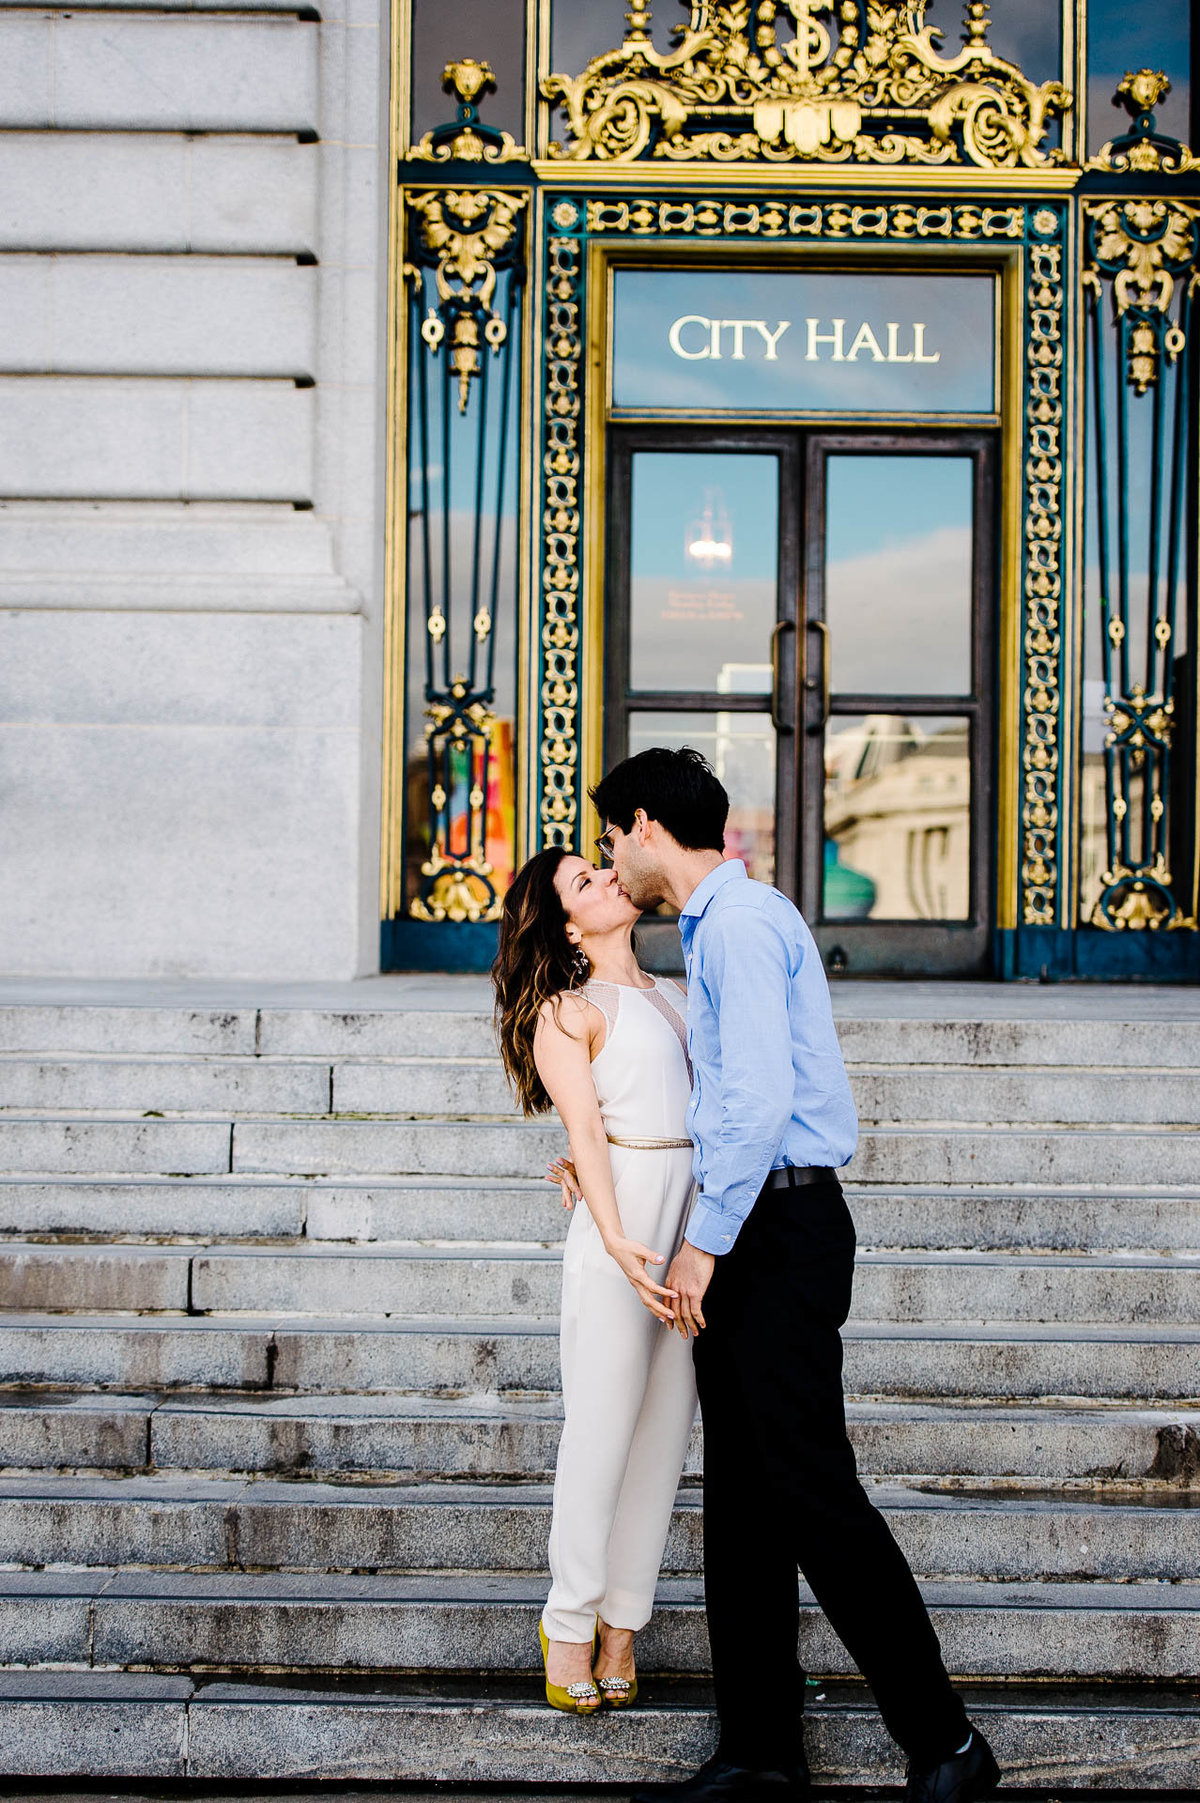 San-Francisco-wedding-photography-stephane-lemaire_11